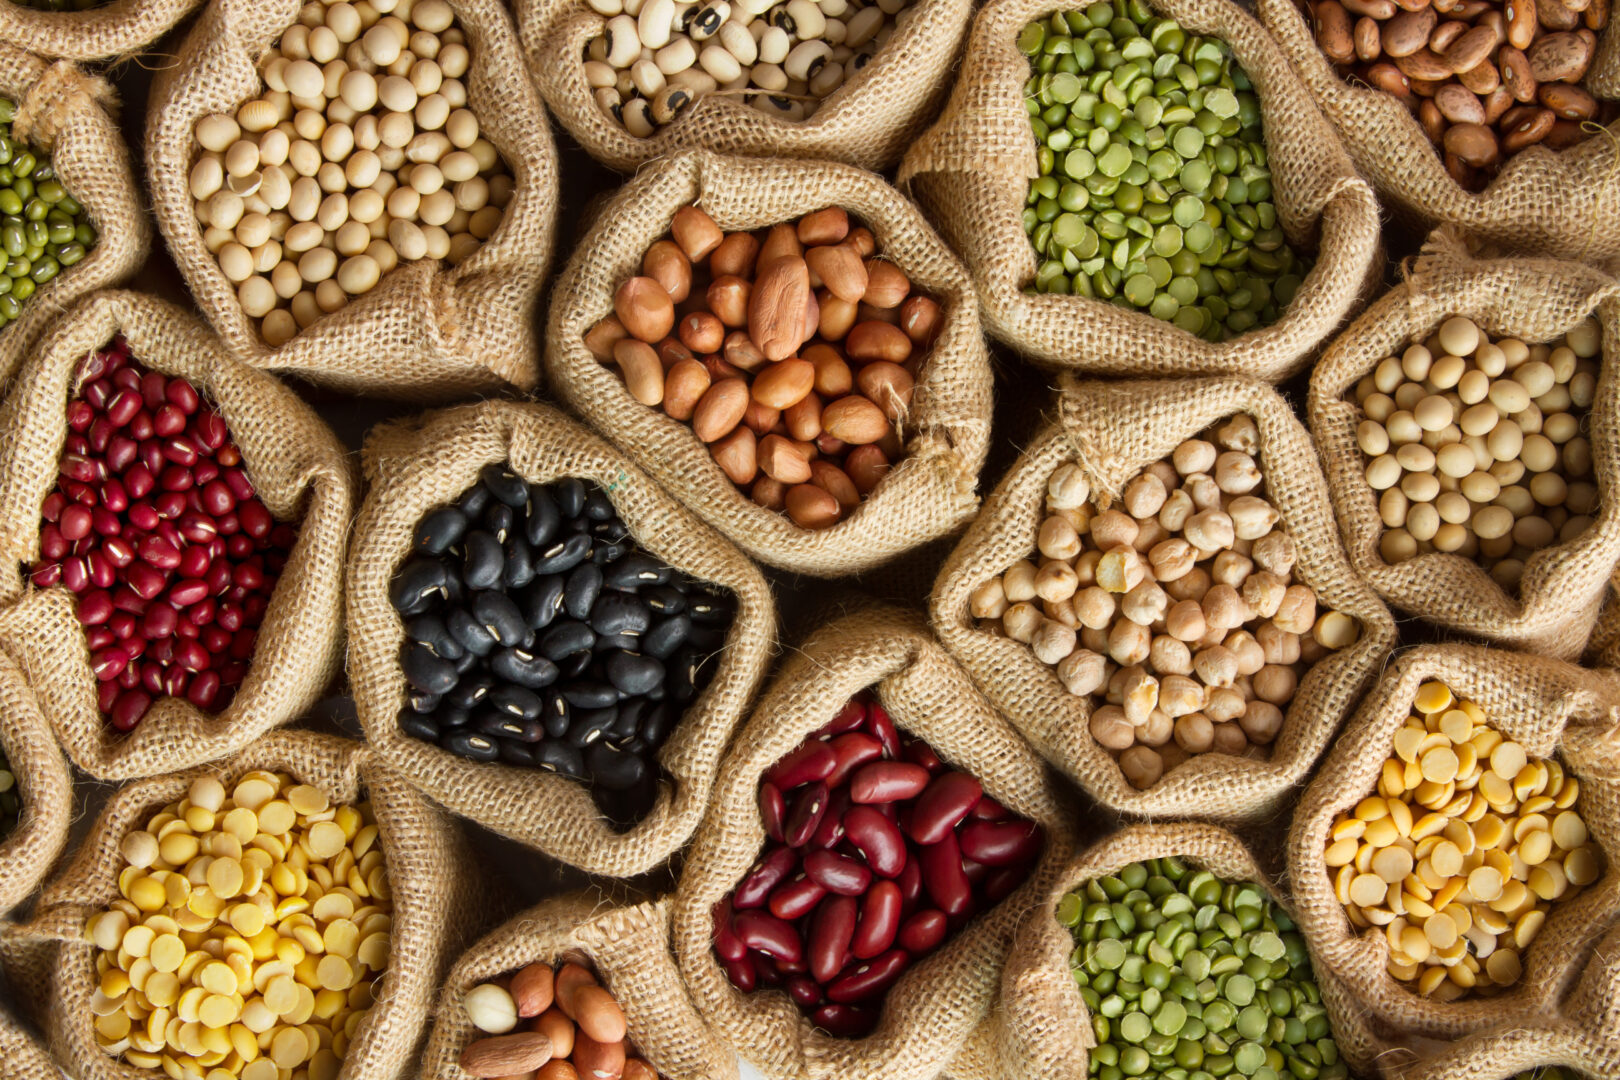 Variety of pulses/beans in bags